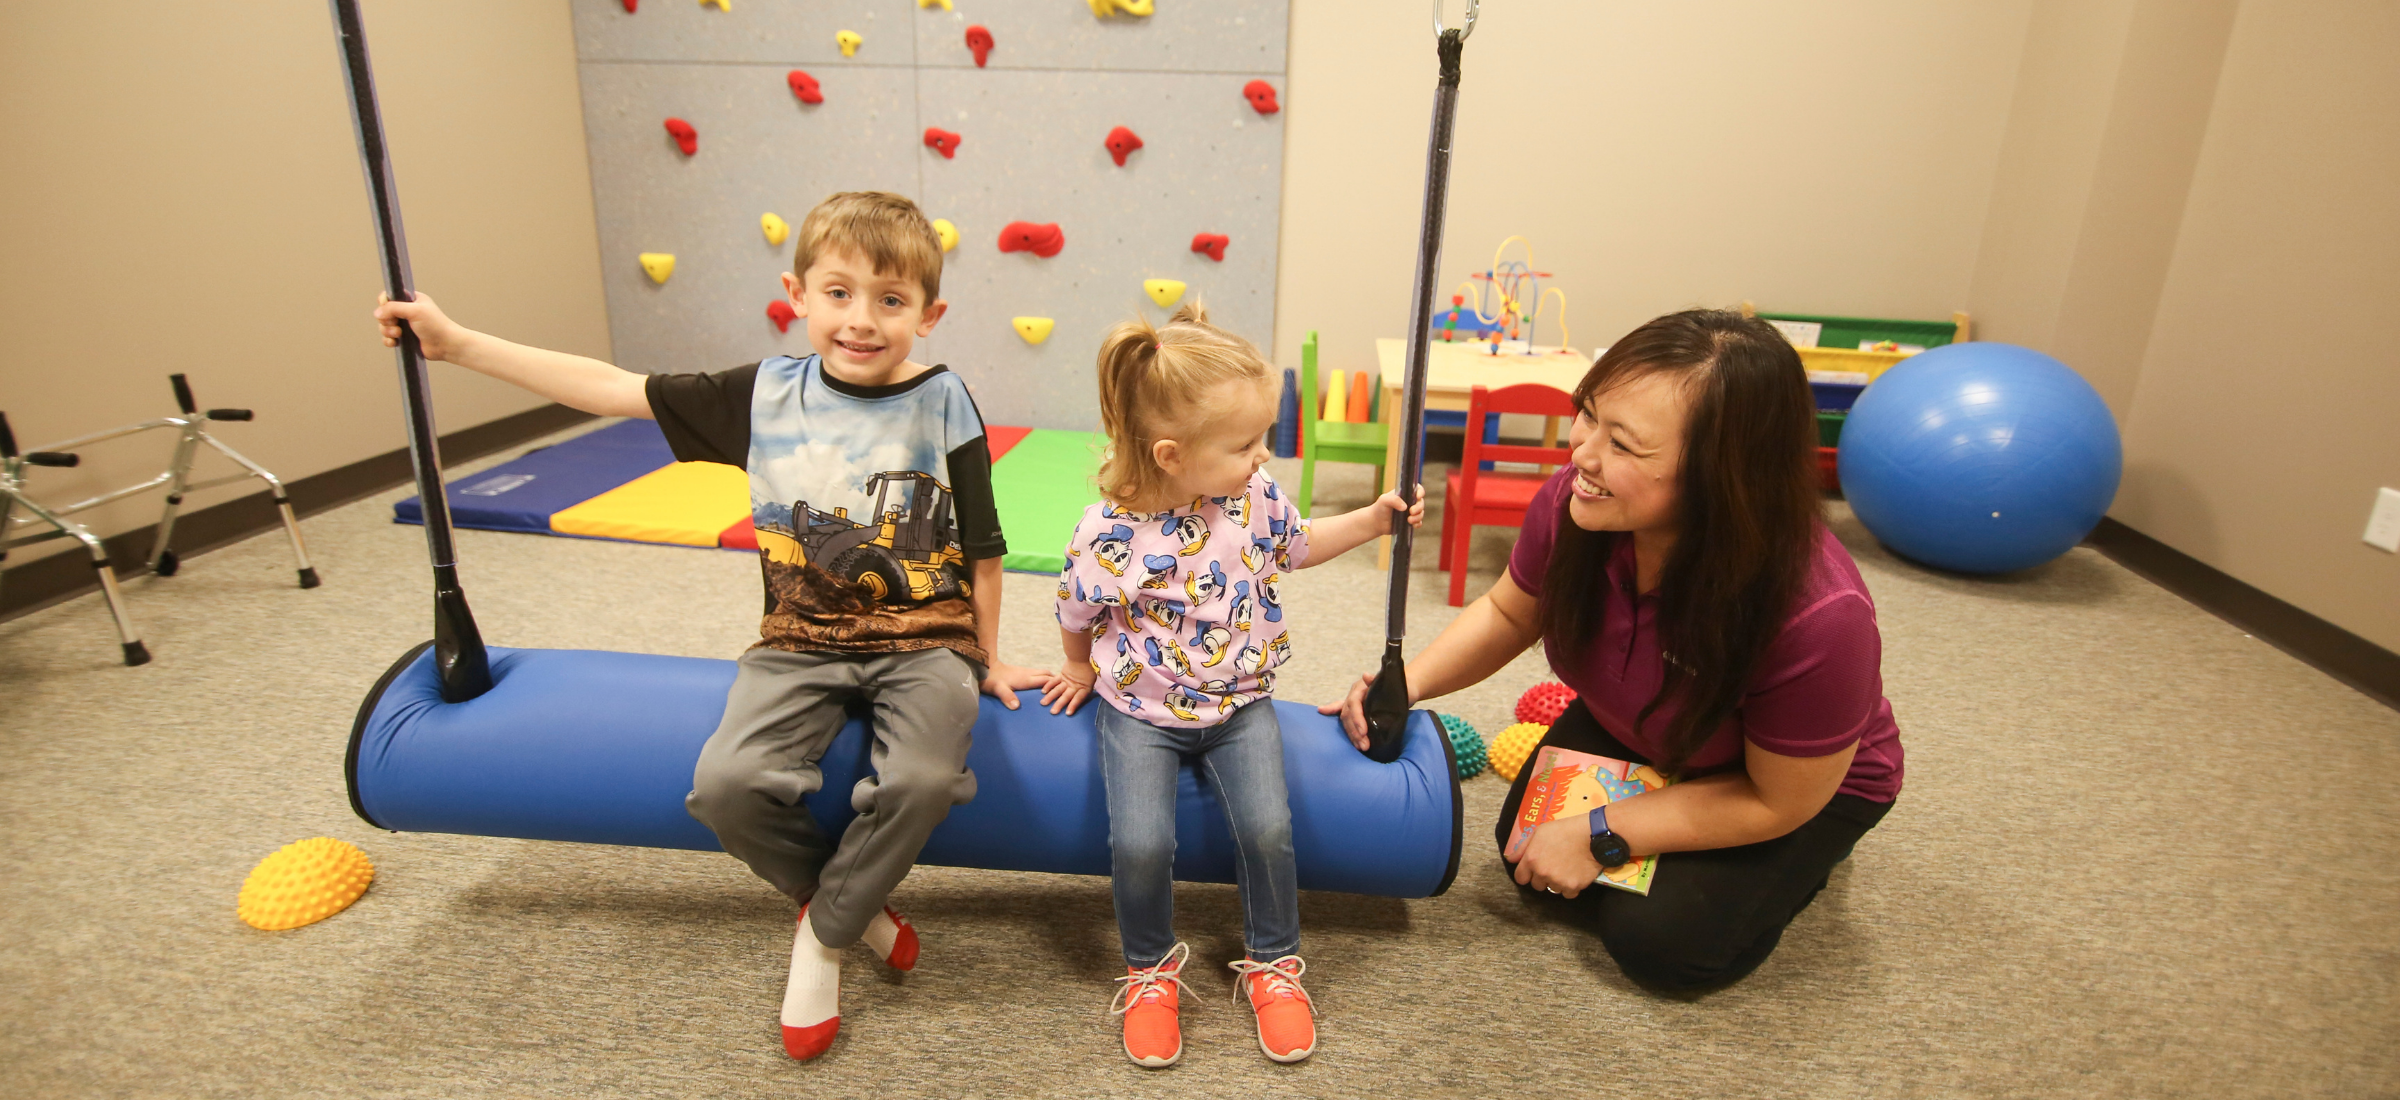 RehabVisions Fairfield Pediatric Therapy